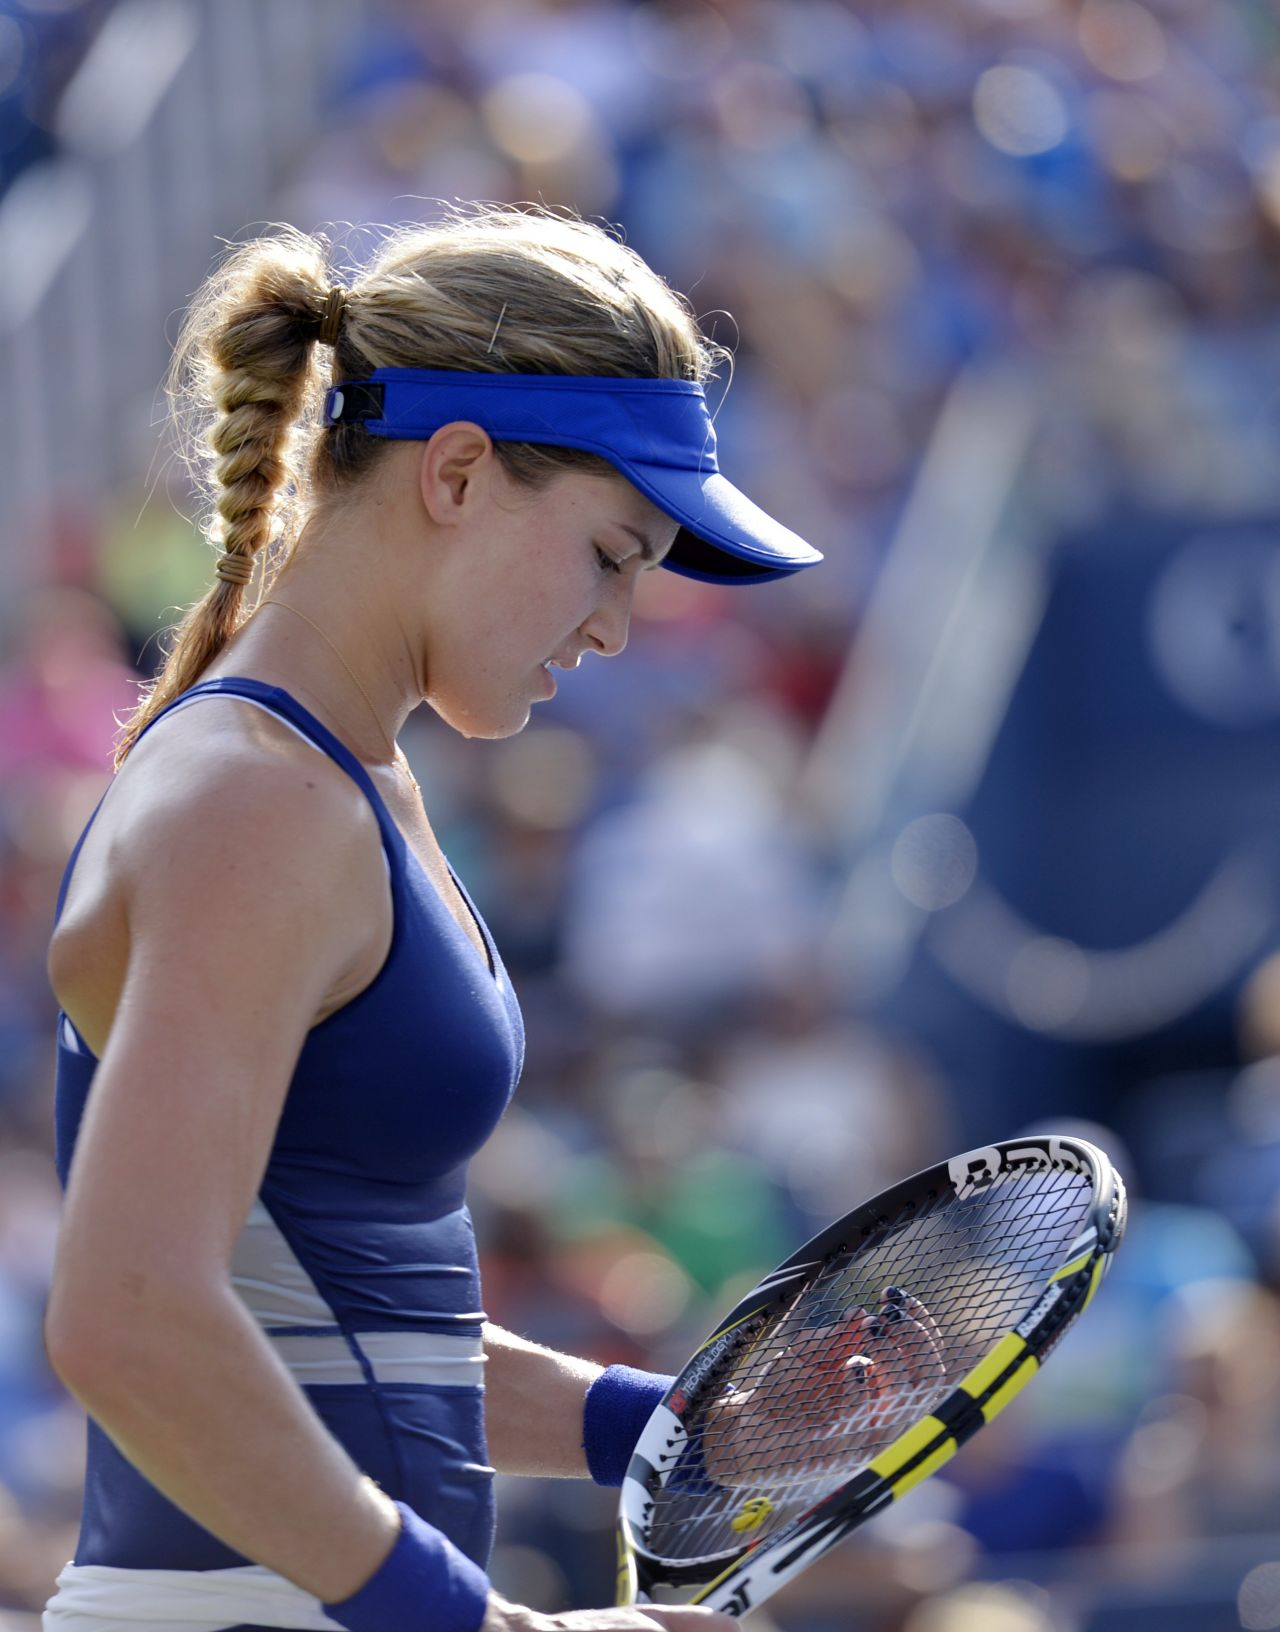 Eugenie Bouchard – 2014 U.S. Open Tennis Tournament in New York City – 4th Round